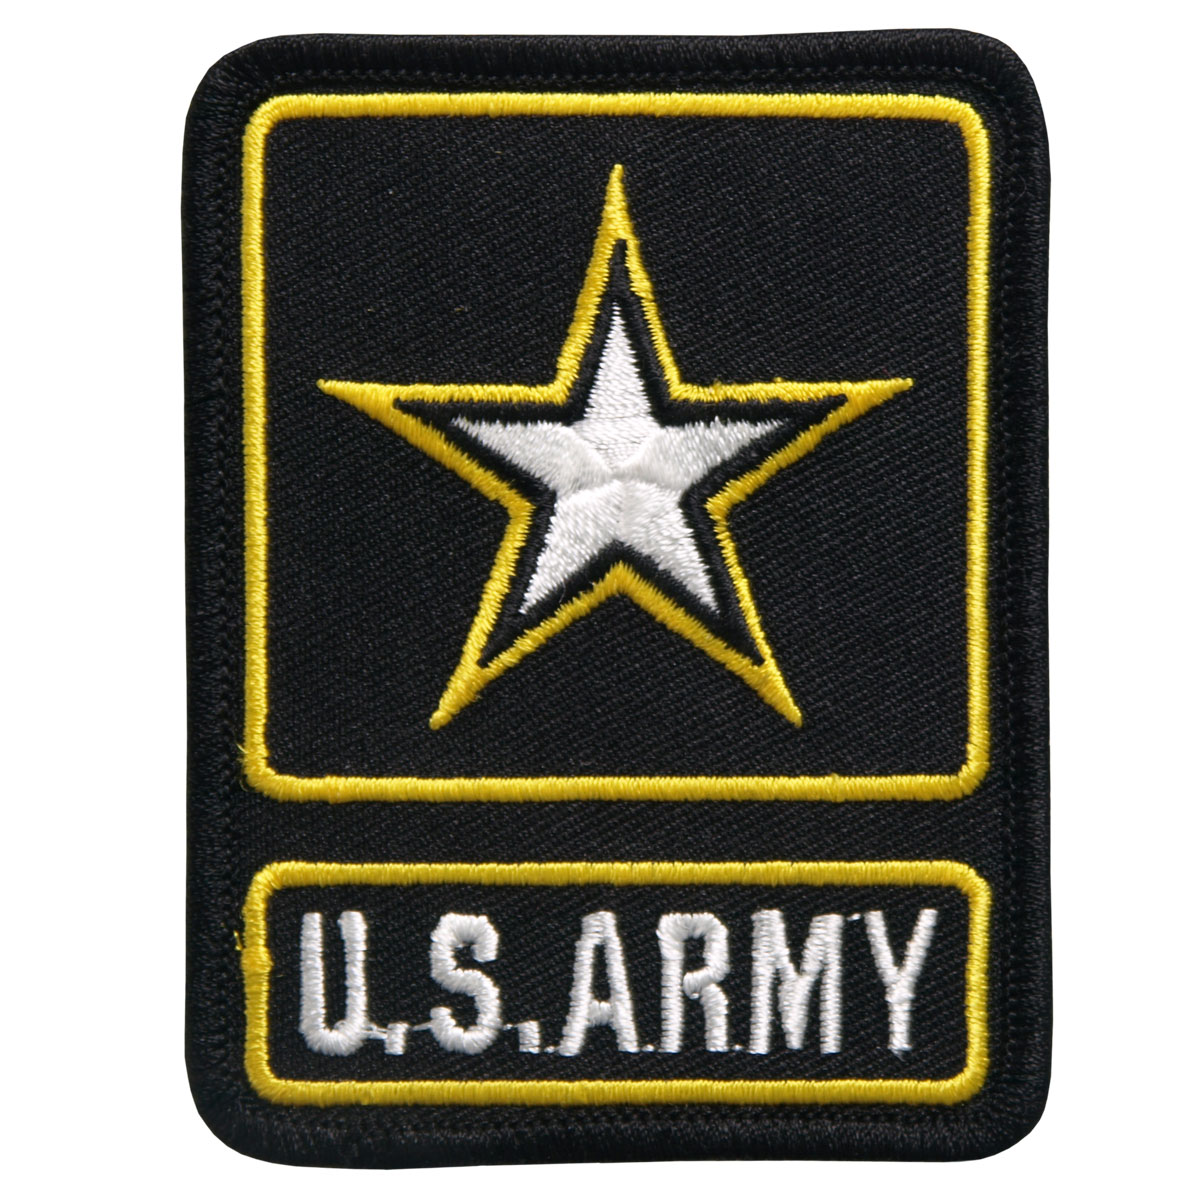 Star Army Simple Png image #9366